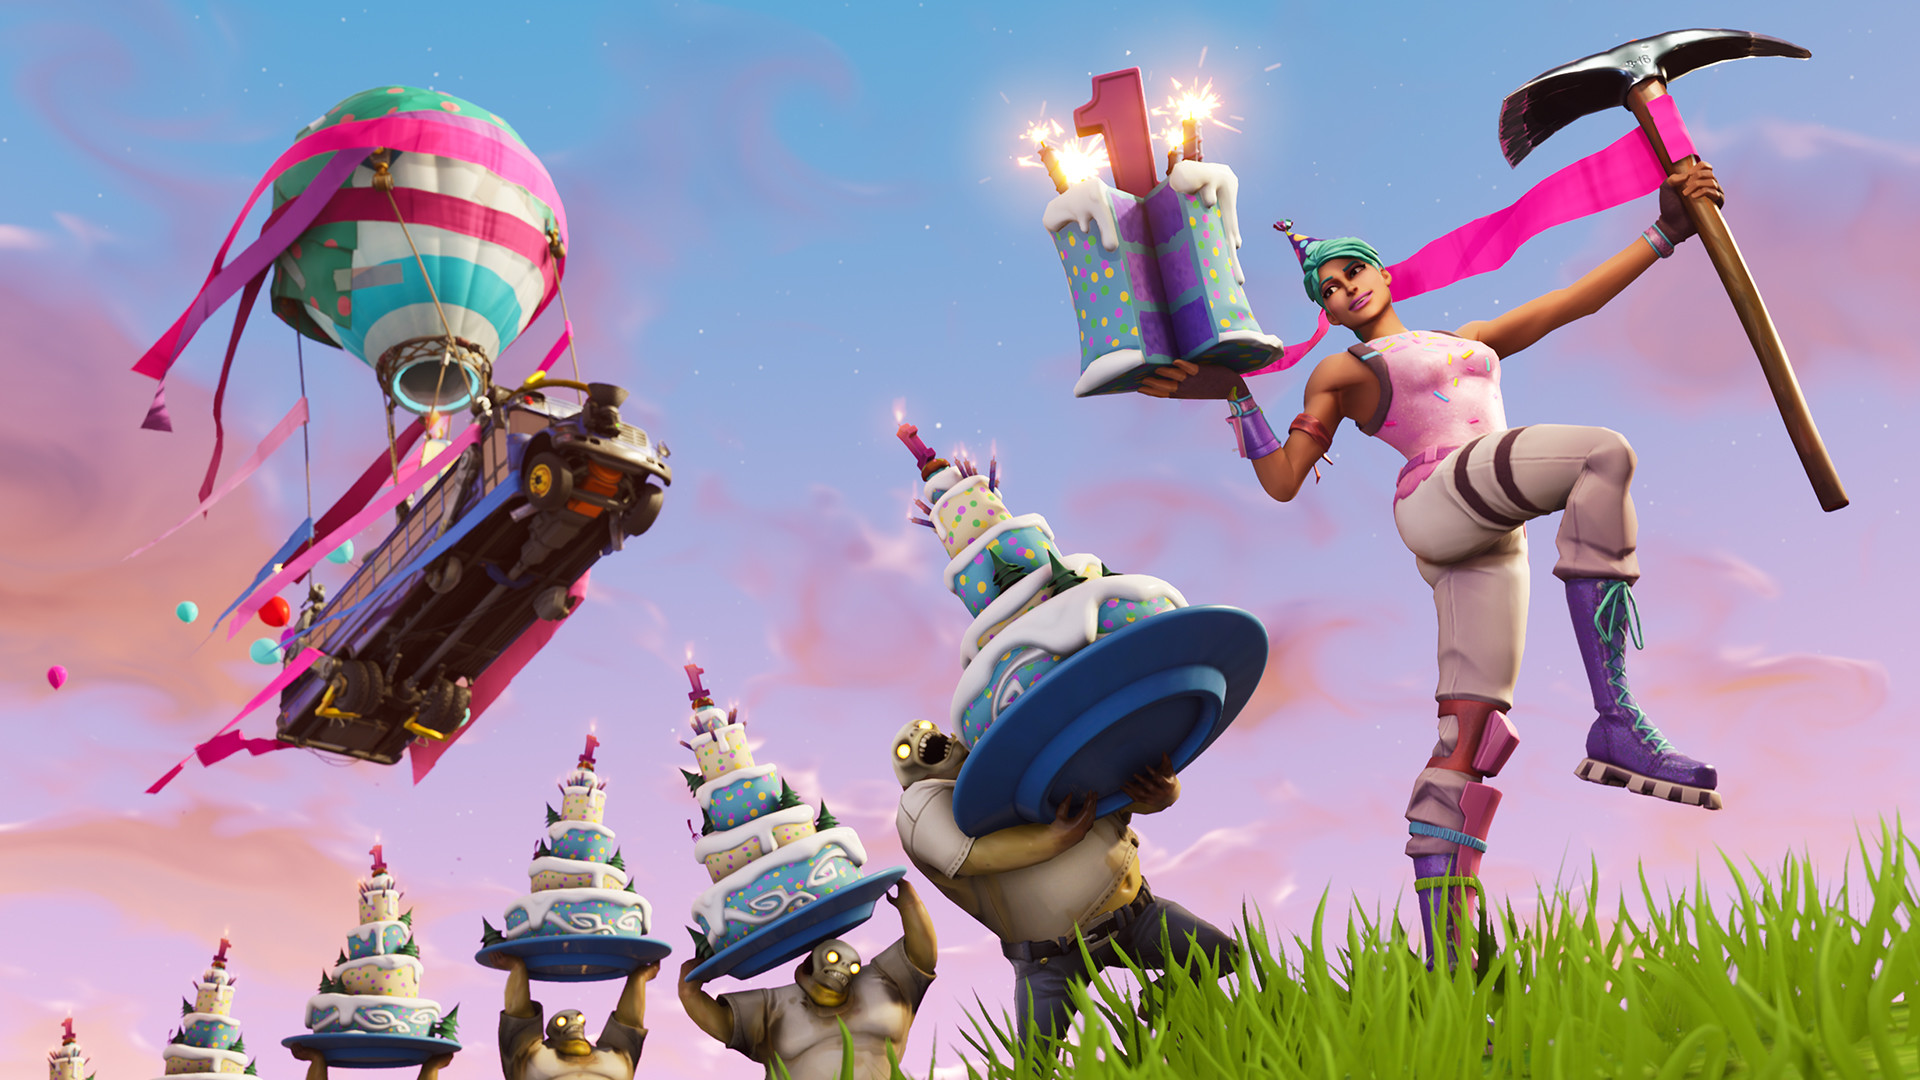 Fortnite Celebrates First Birthday With New Limited Time Event